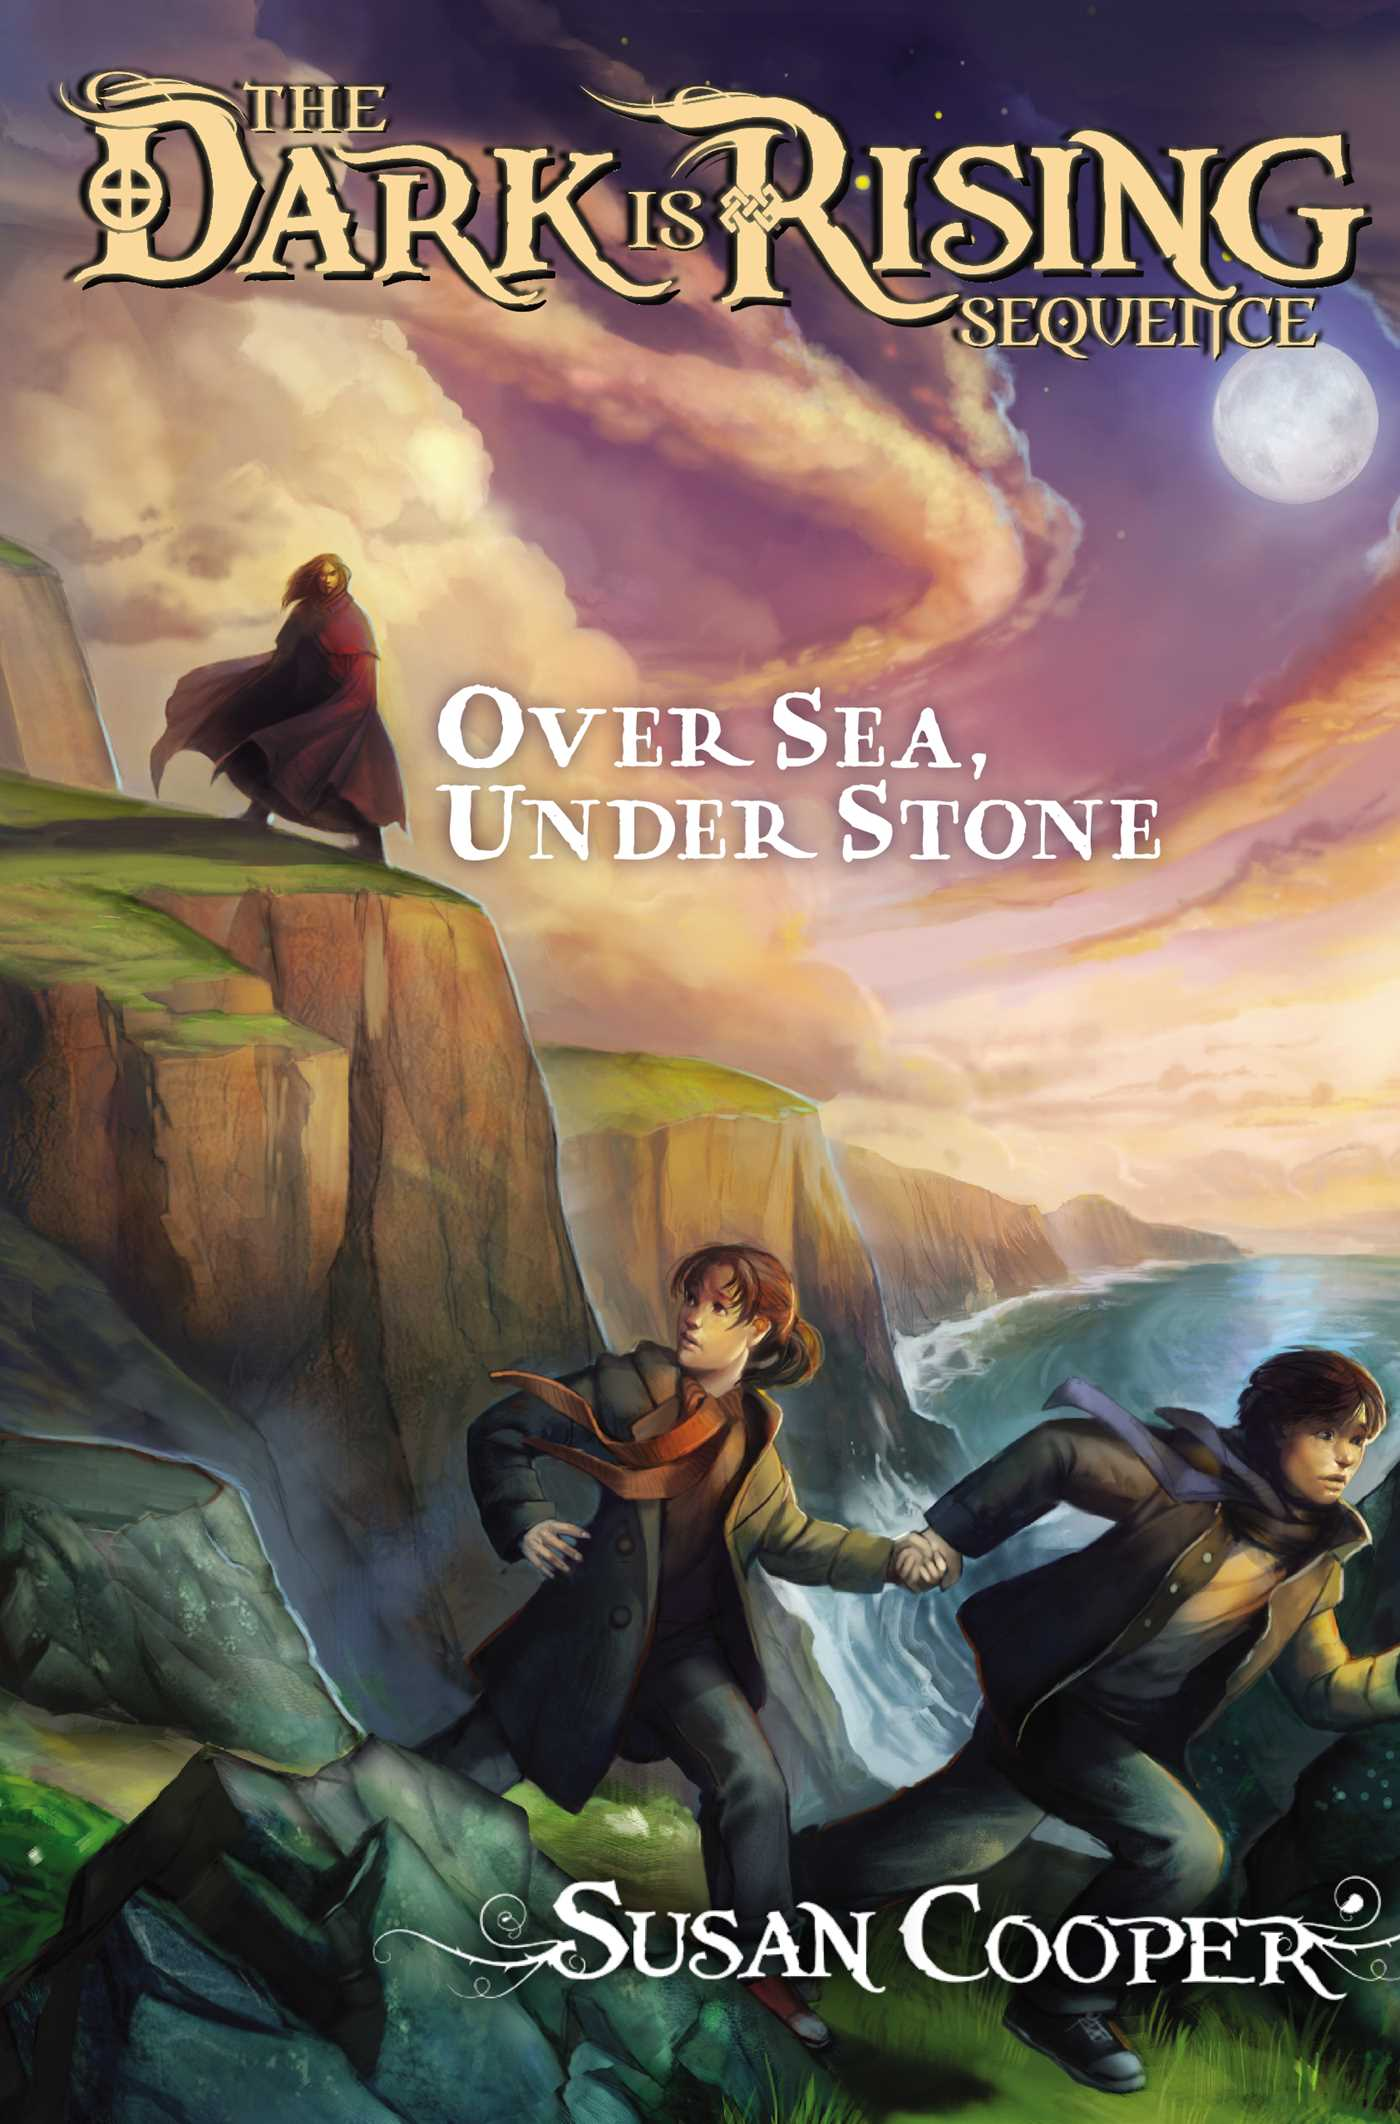 Over sea under stone 9781442458956 hr